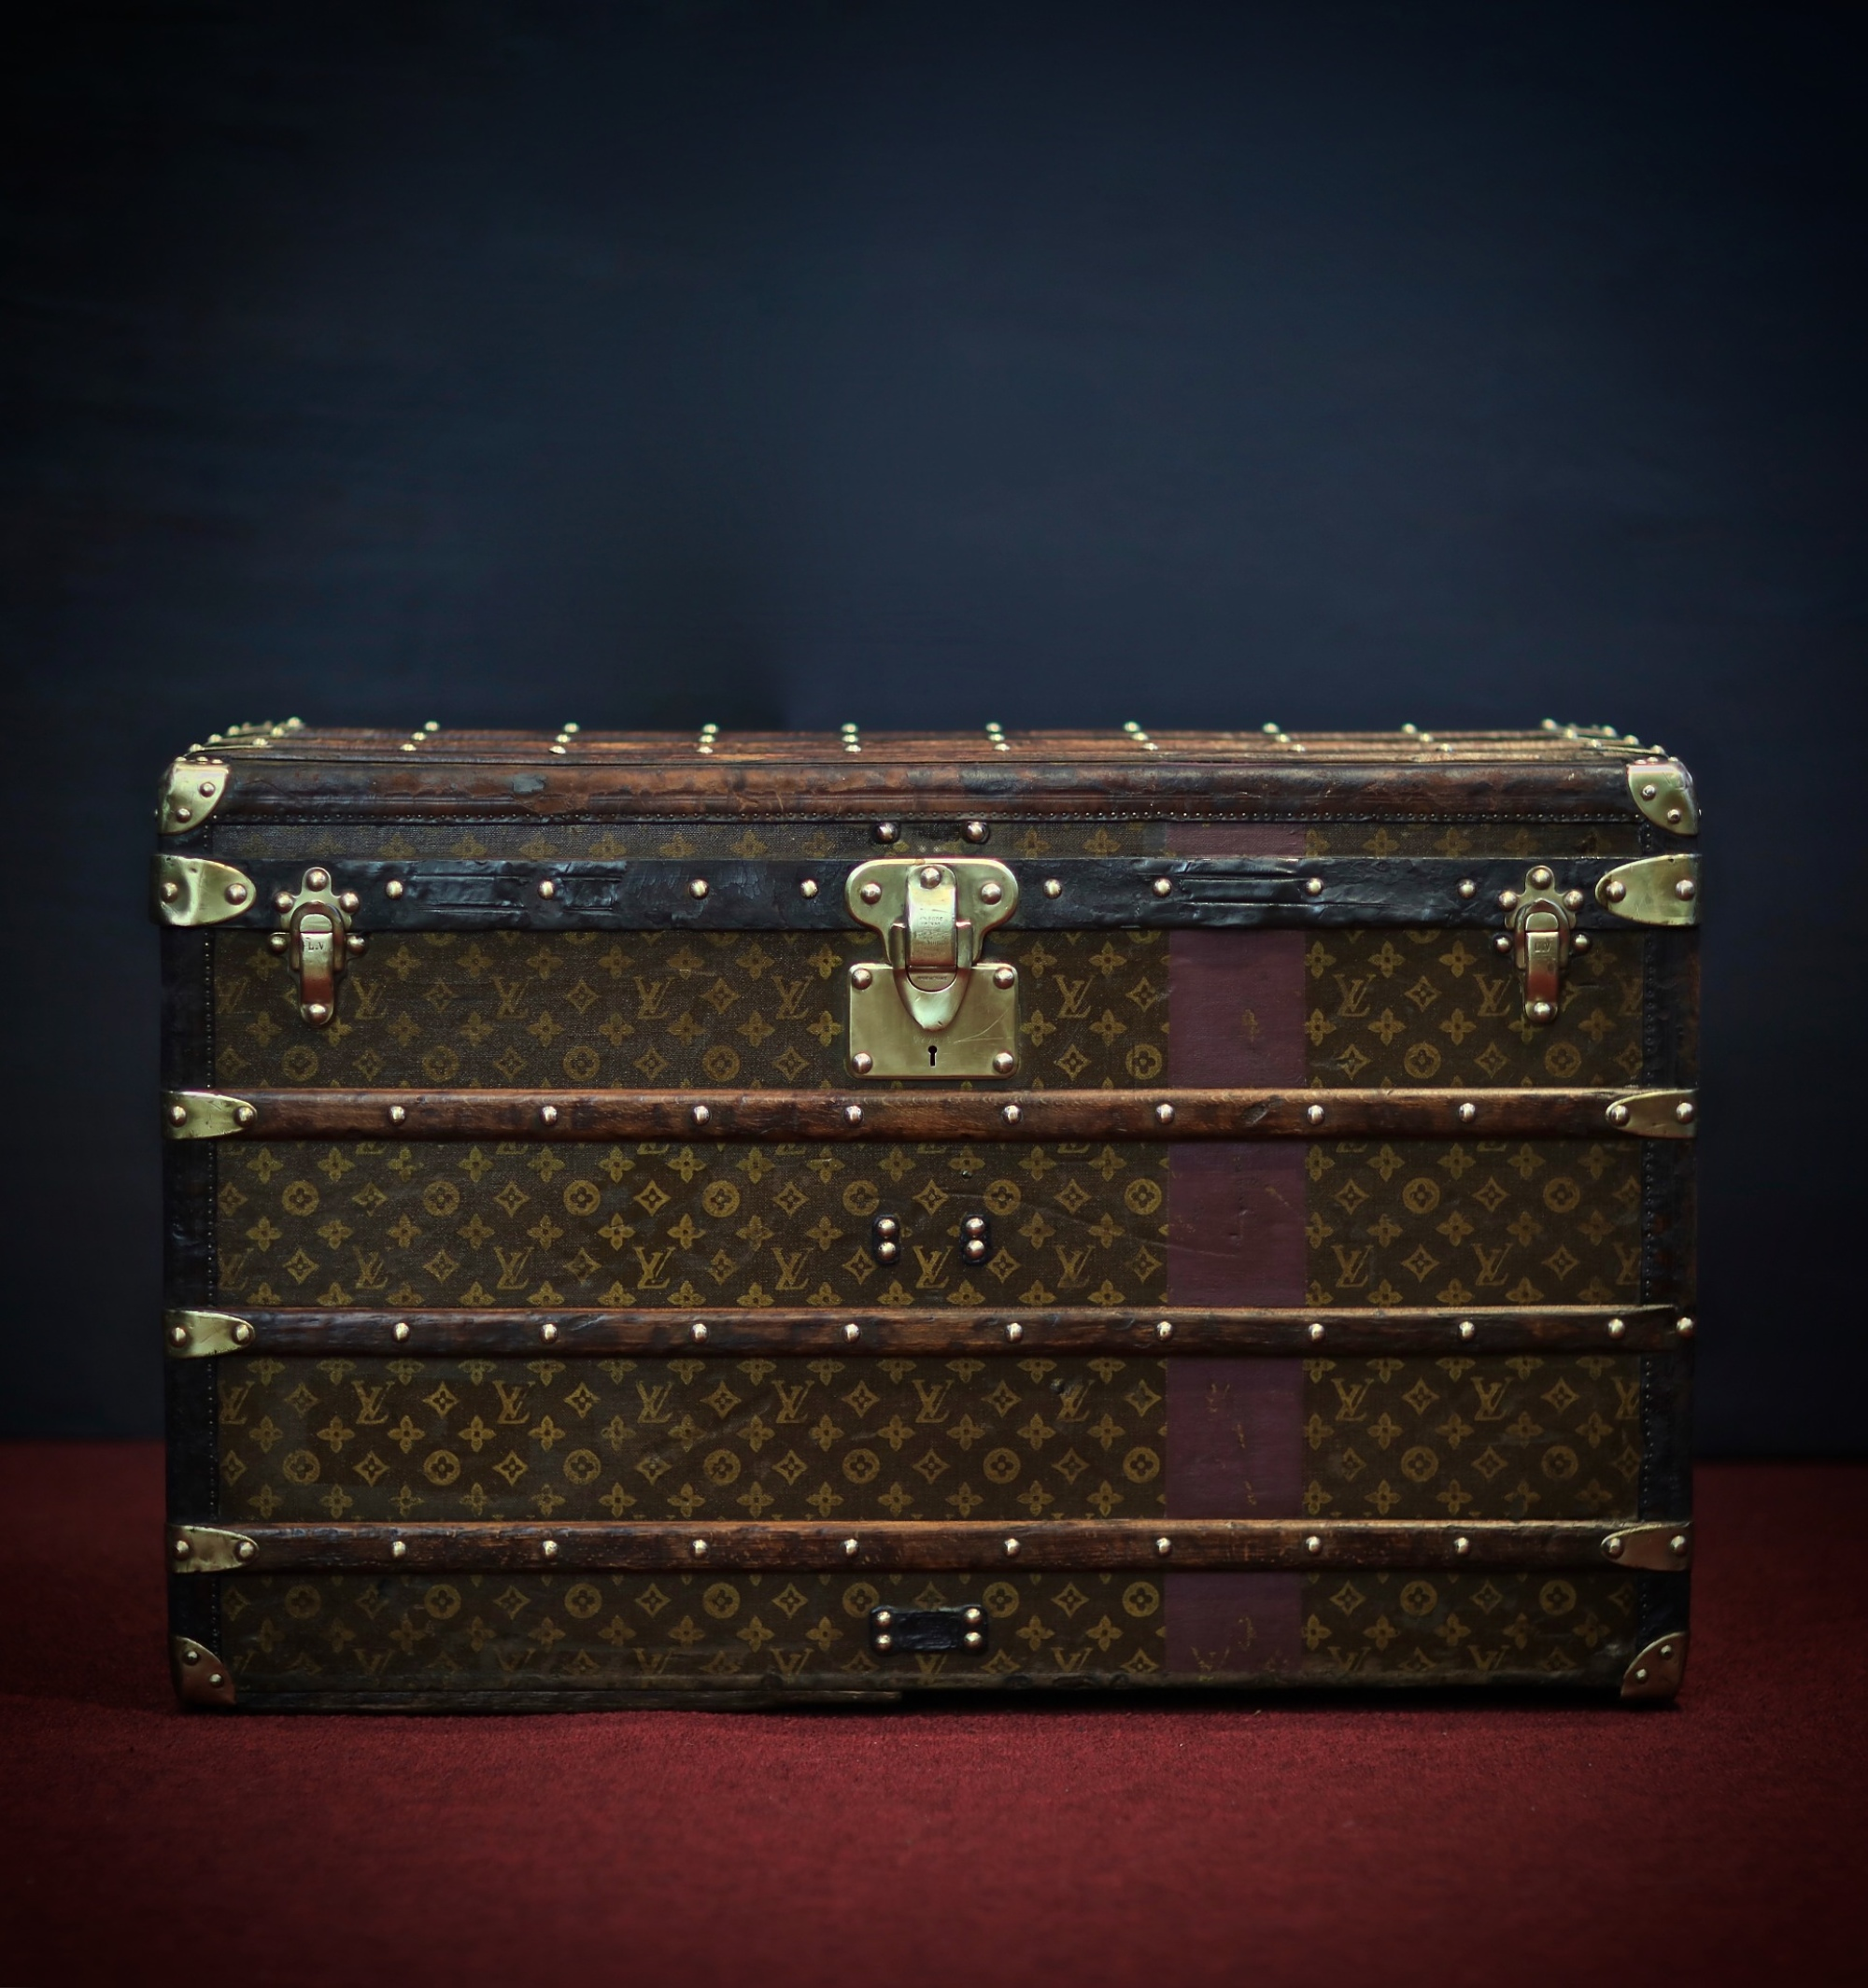 the-trunk-louis-vuitton-thumbnail-product-5641